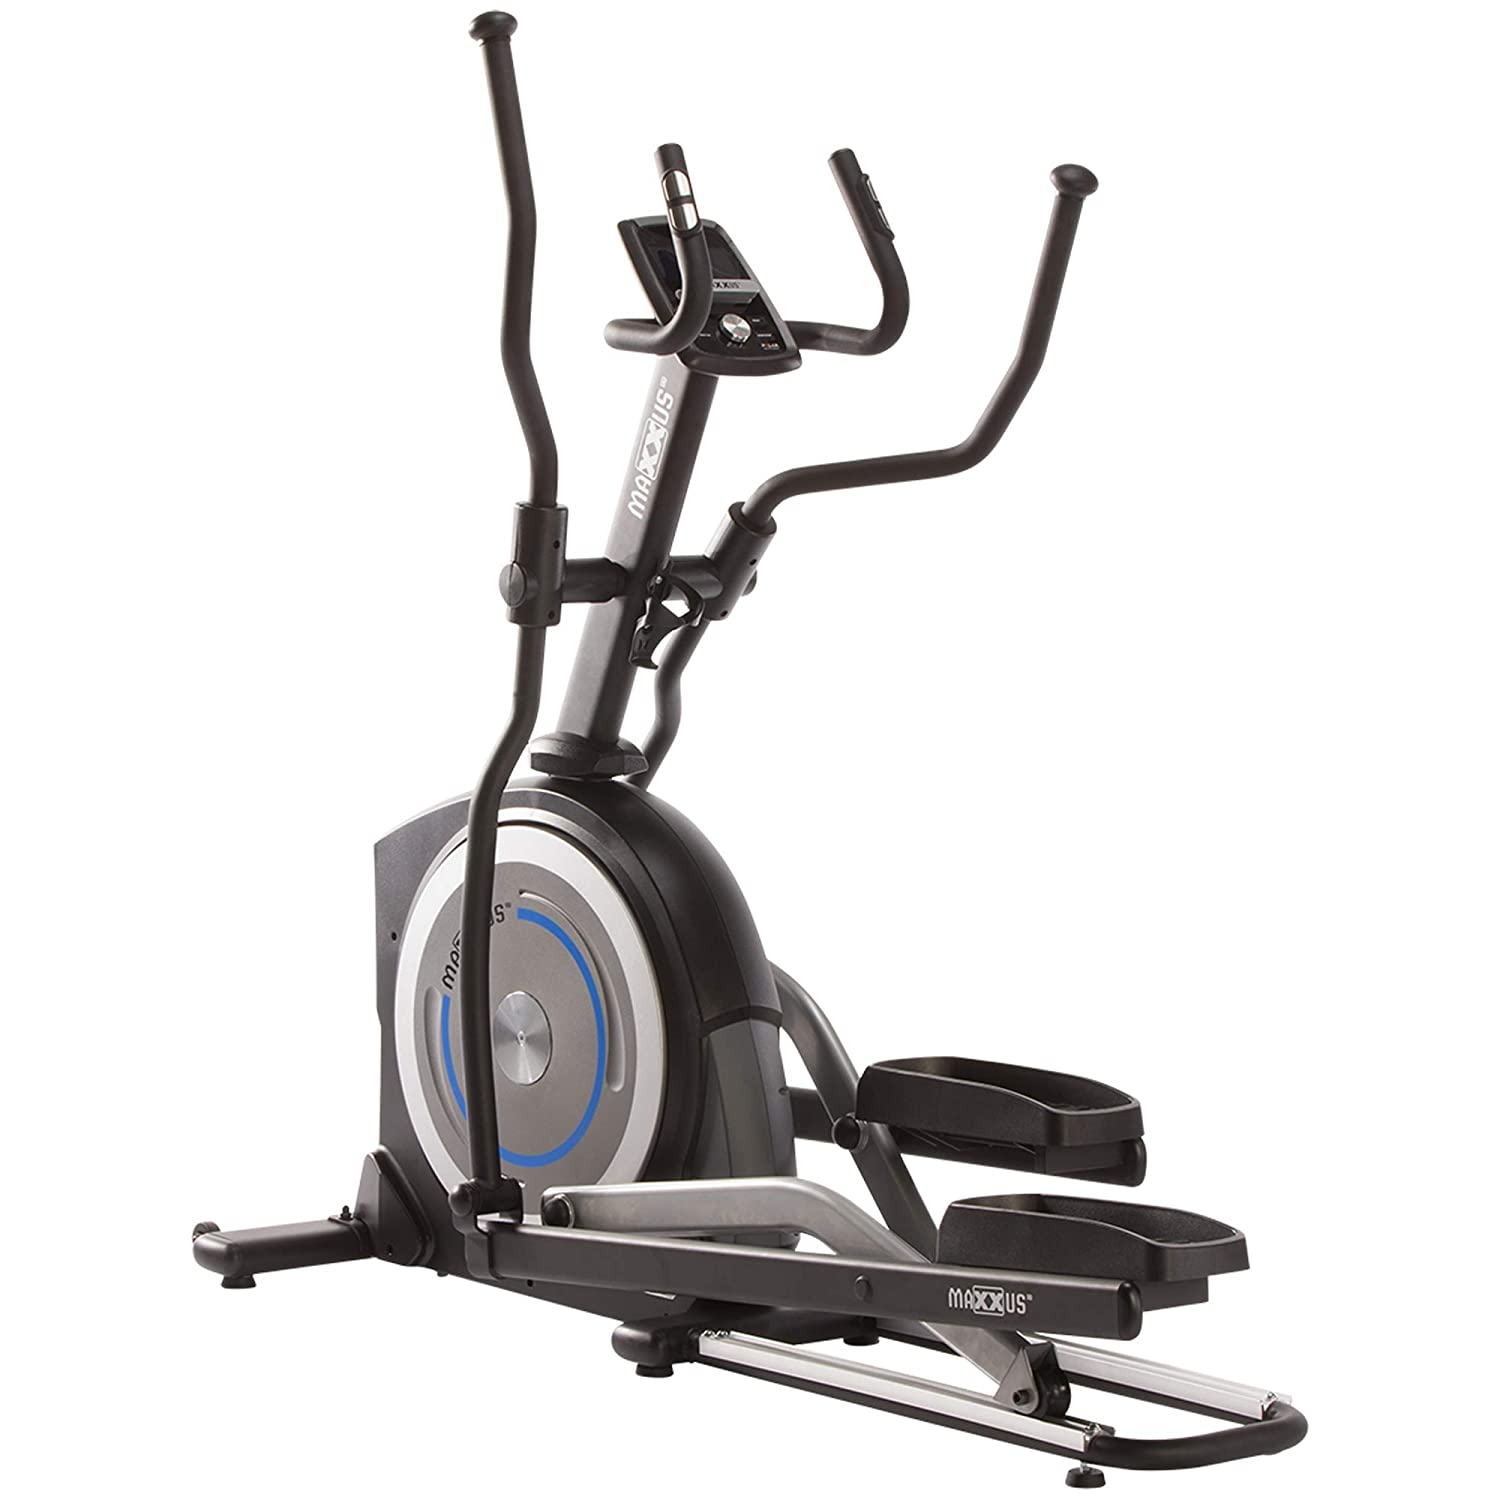 Maxxus Crosstrainer CX 5.1 im Test